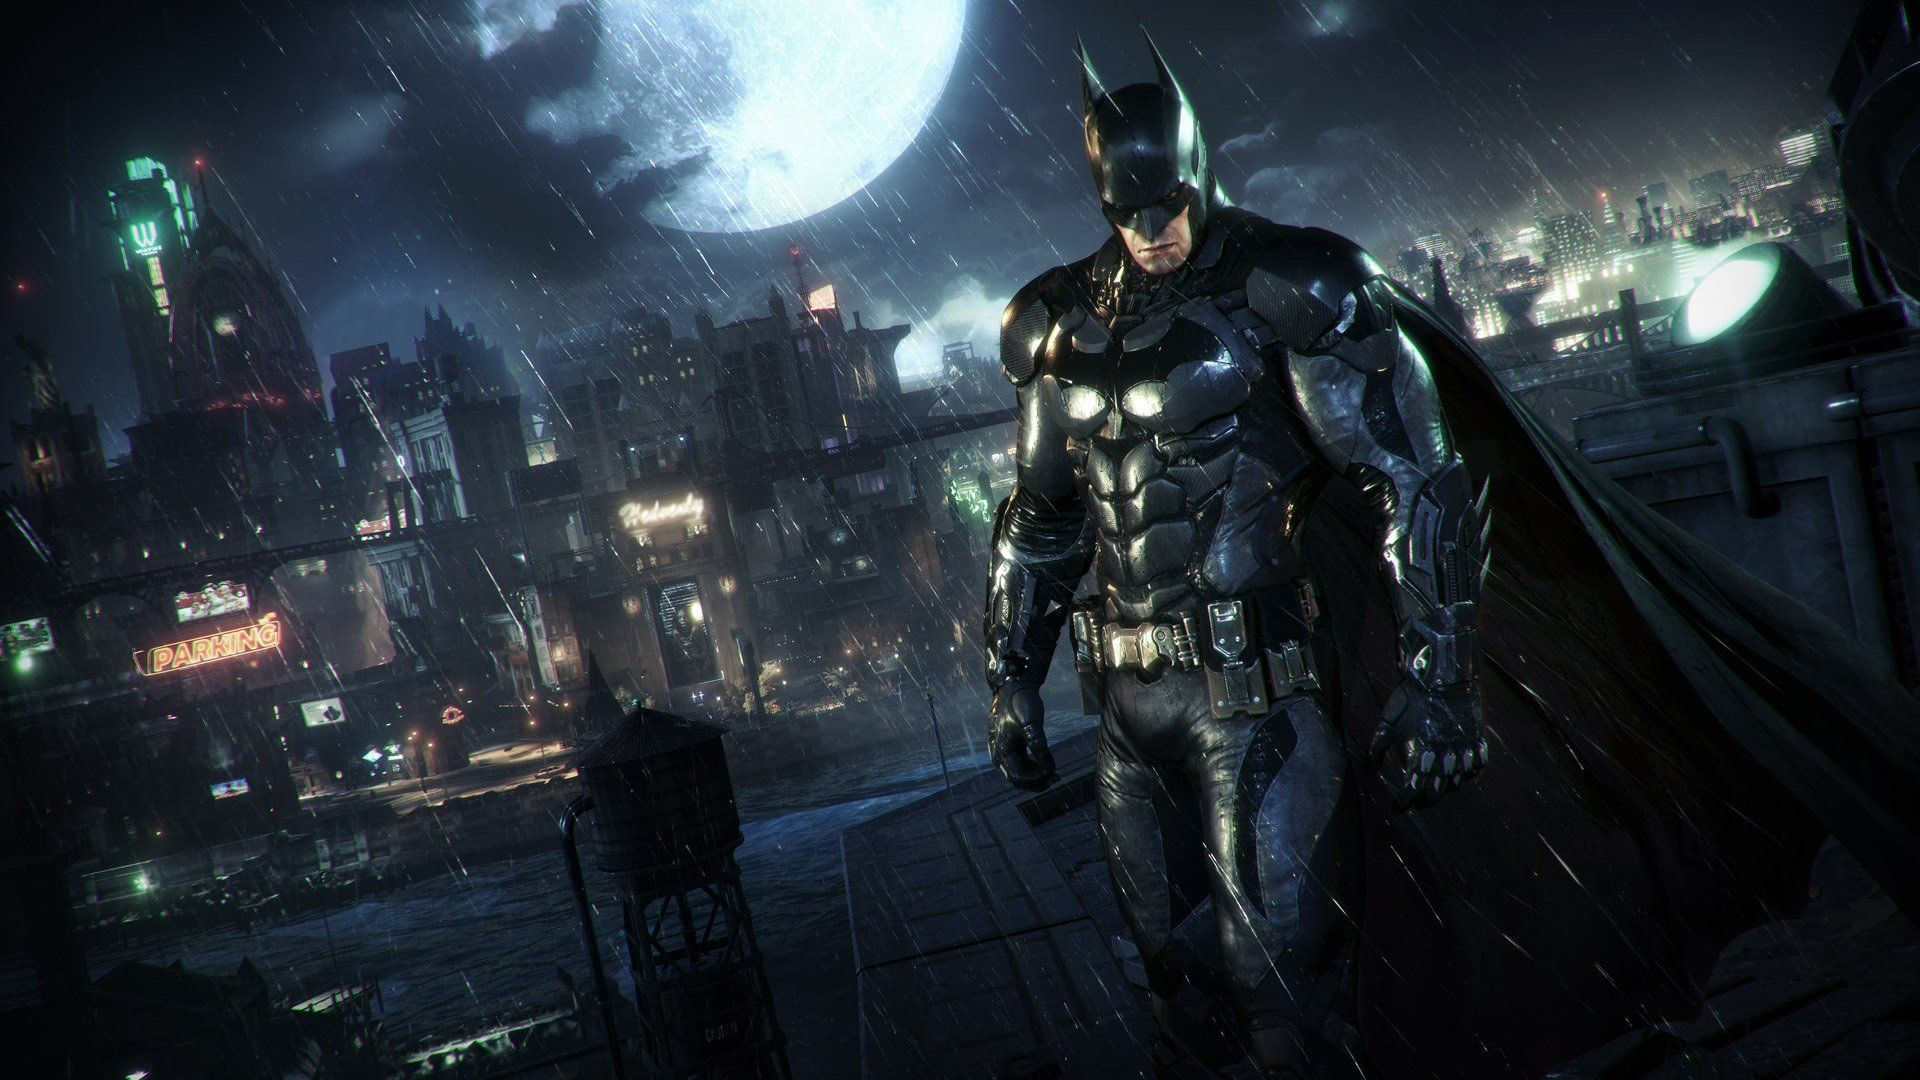 Hd wallpaper of batman - Search Results For Batman Arkham Knight Wallpaper Hd Adorable Wallpapers